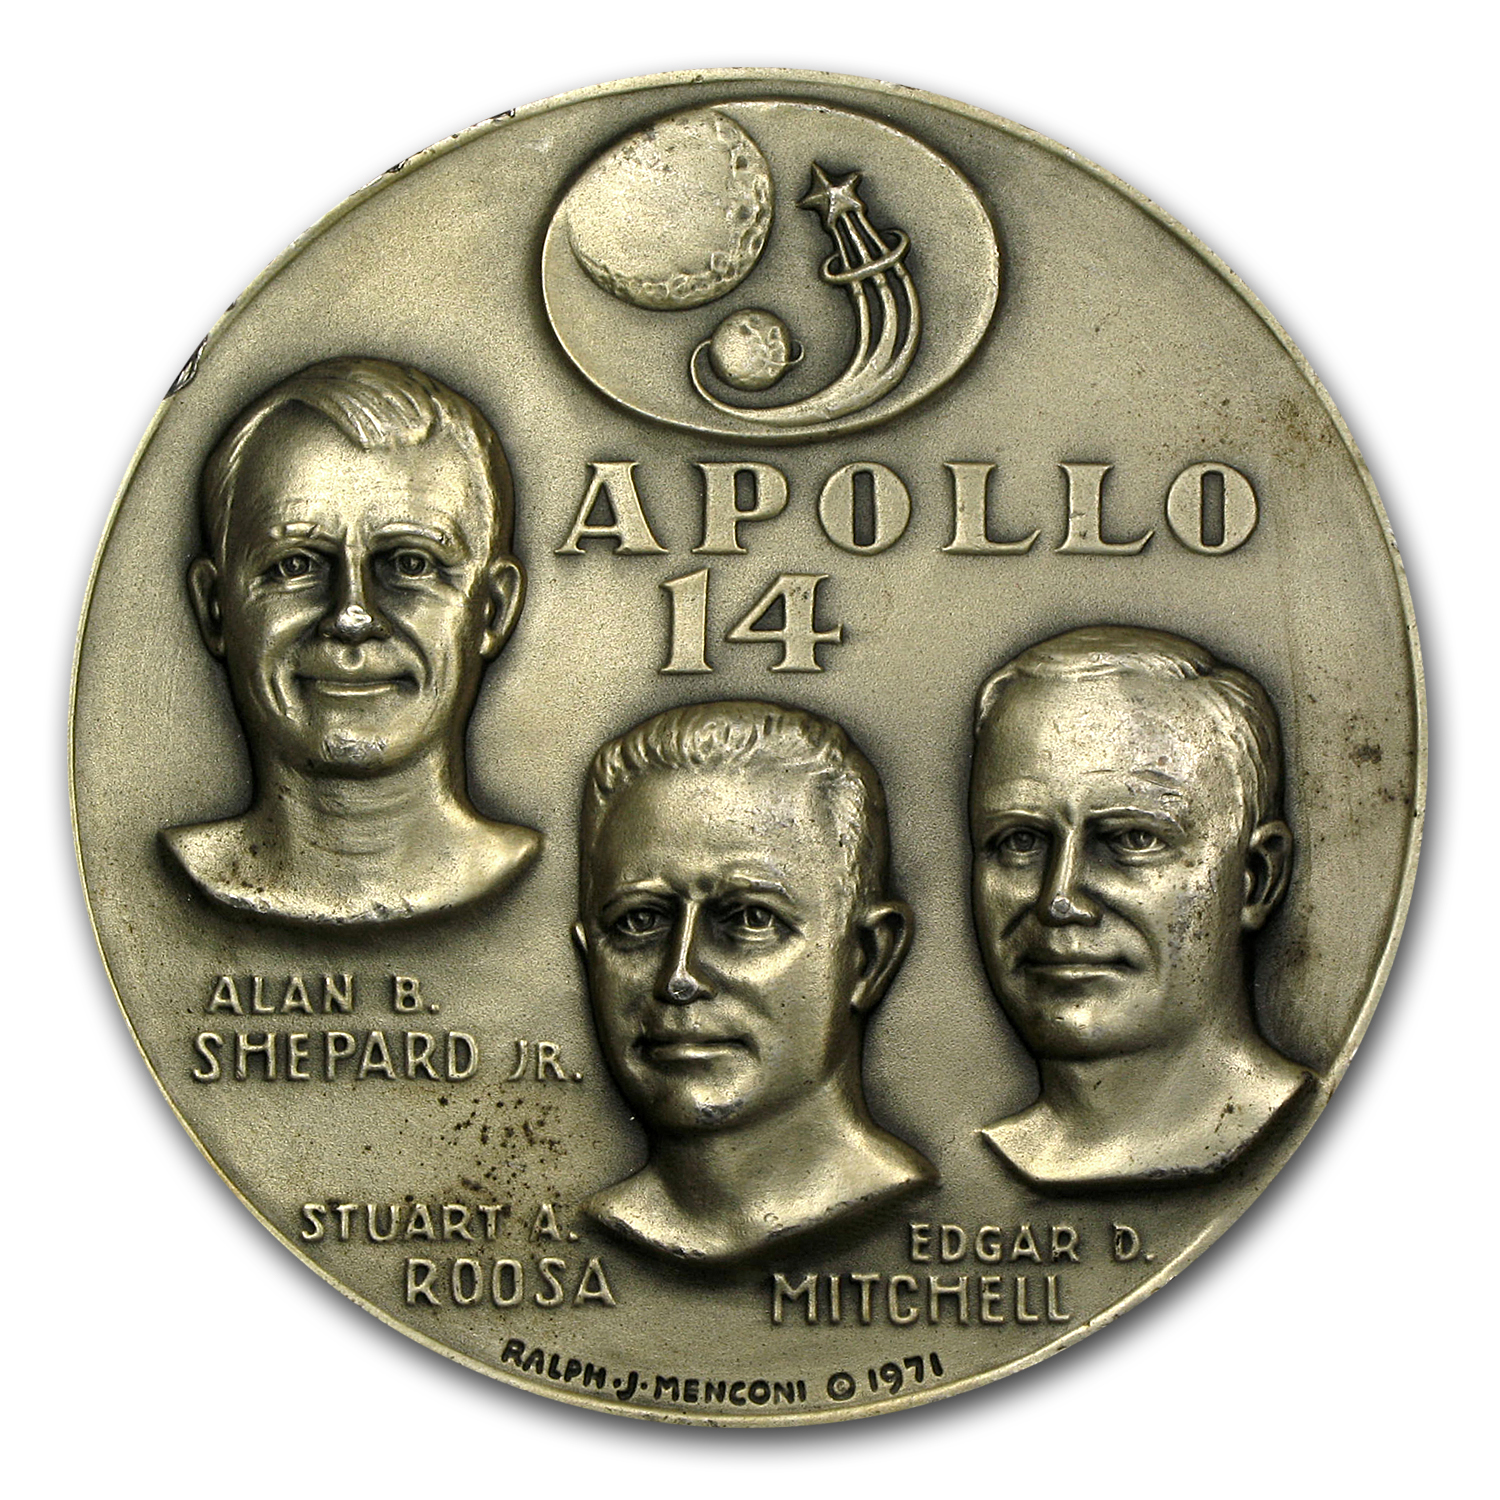 4.74 oz Silver Round - APOLLO 14